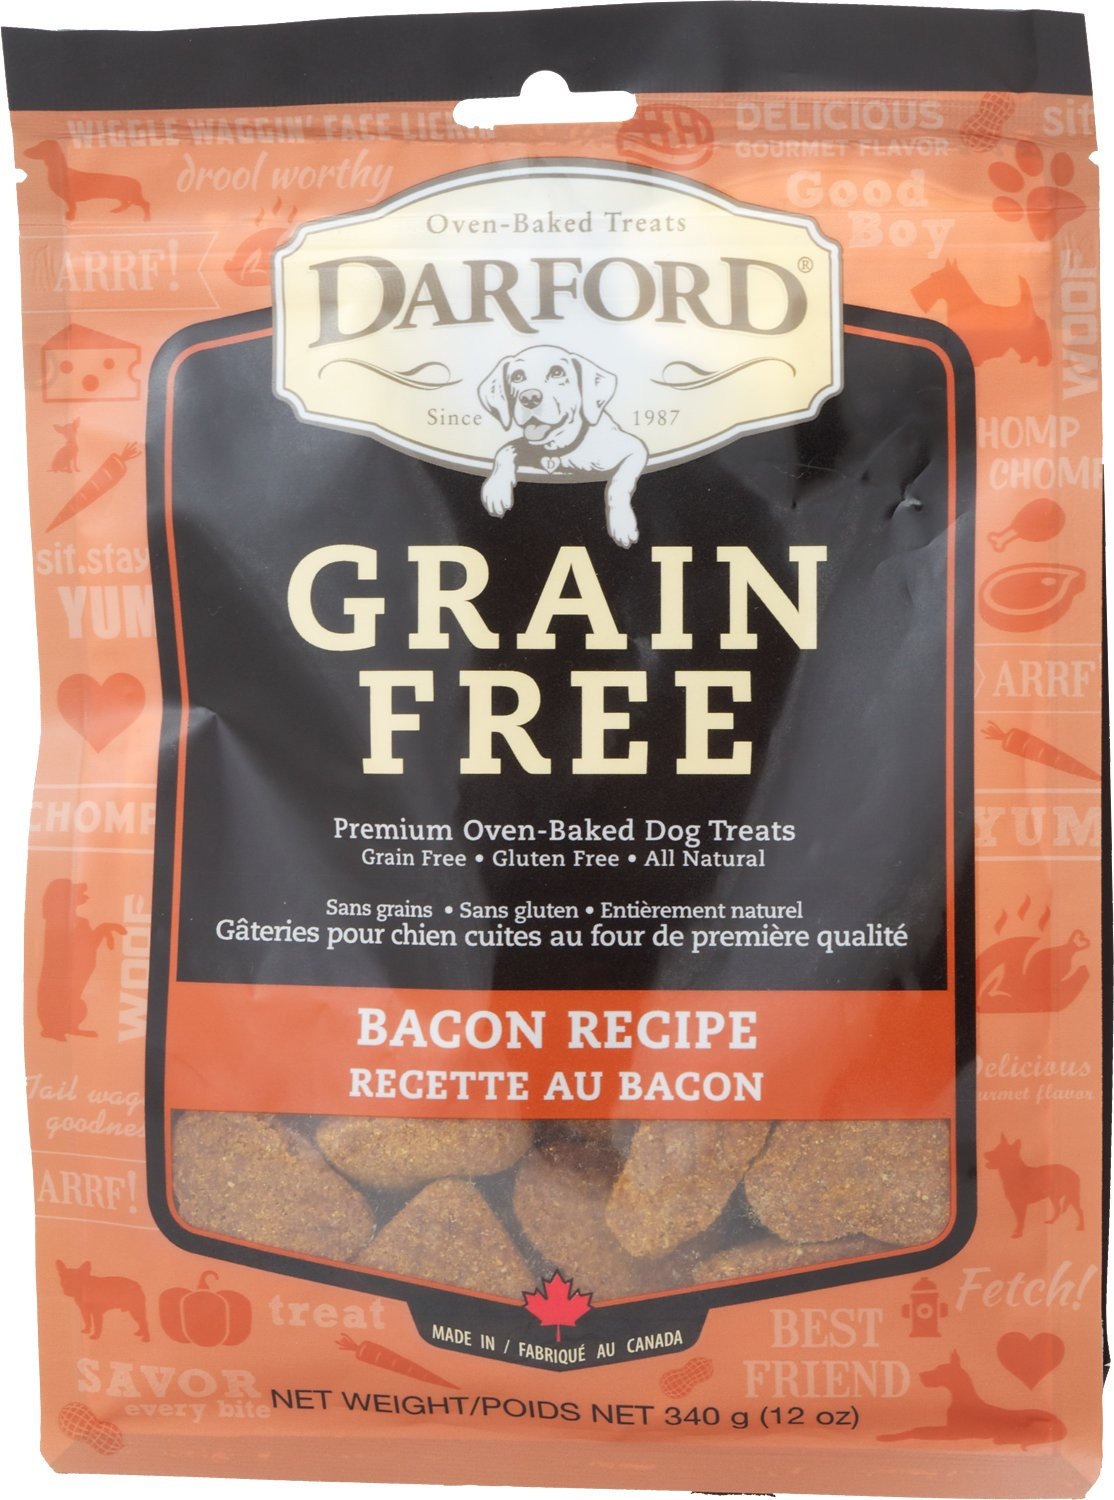 Darford Tasty Bacon Flavor Grain Free Dog Treats 12 Oz Bag Chewy Com